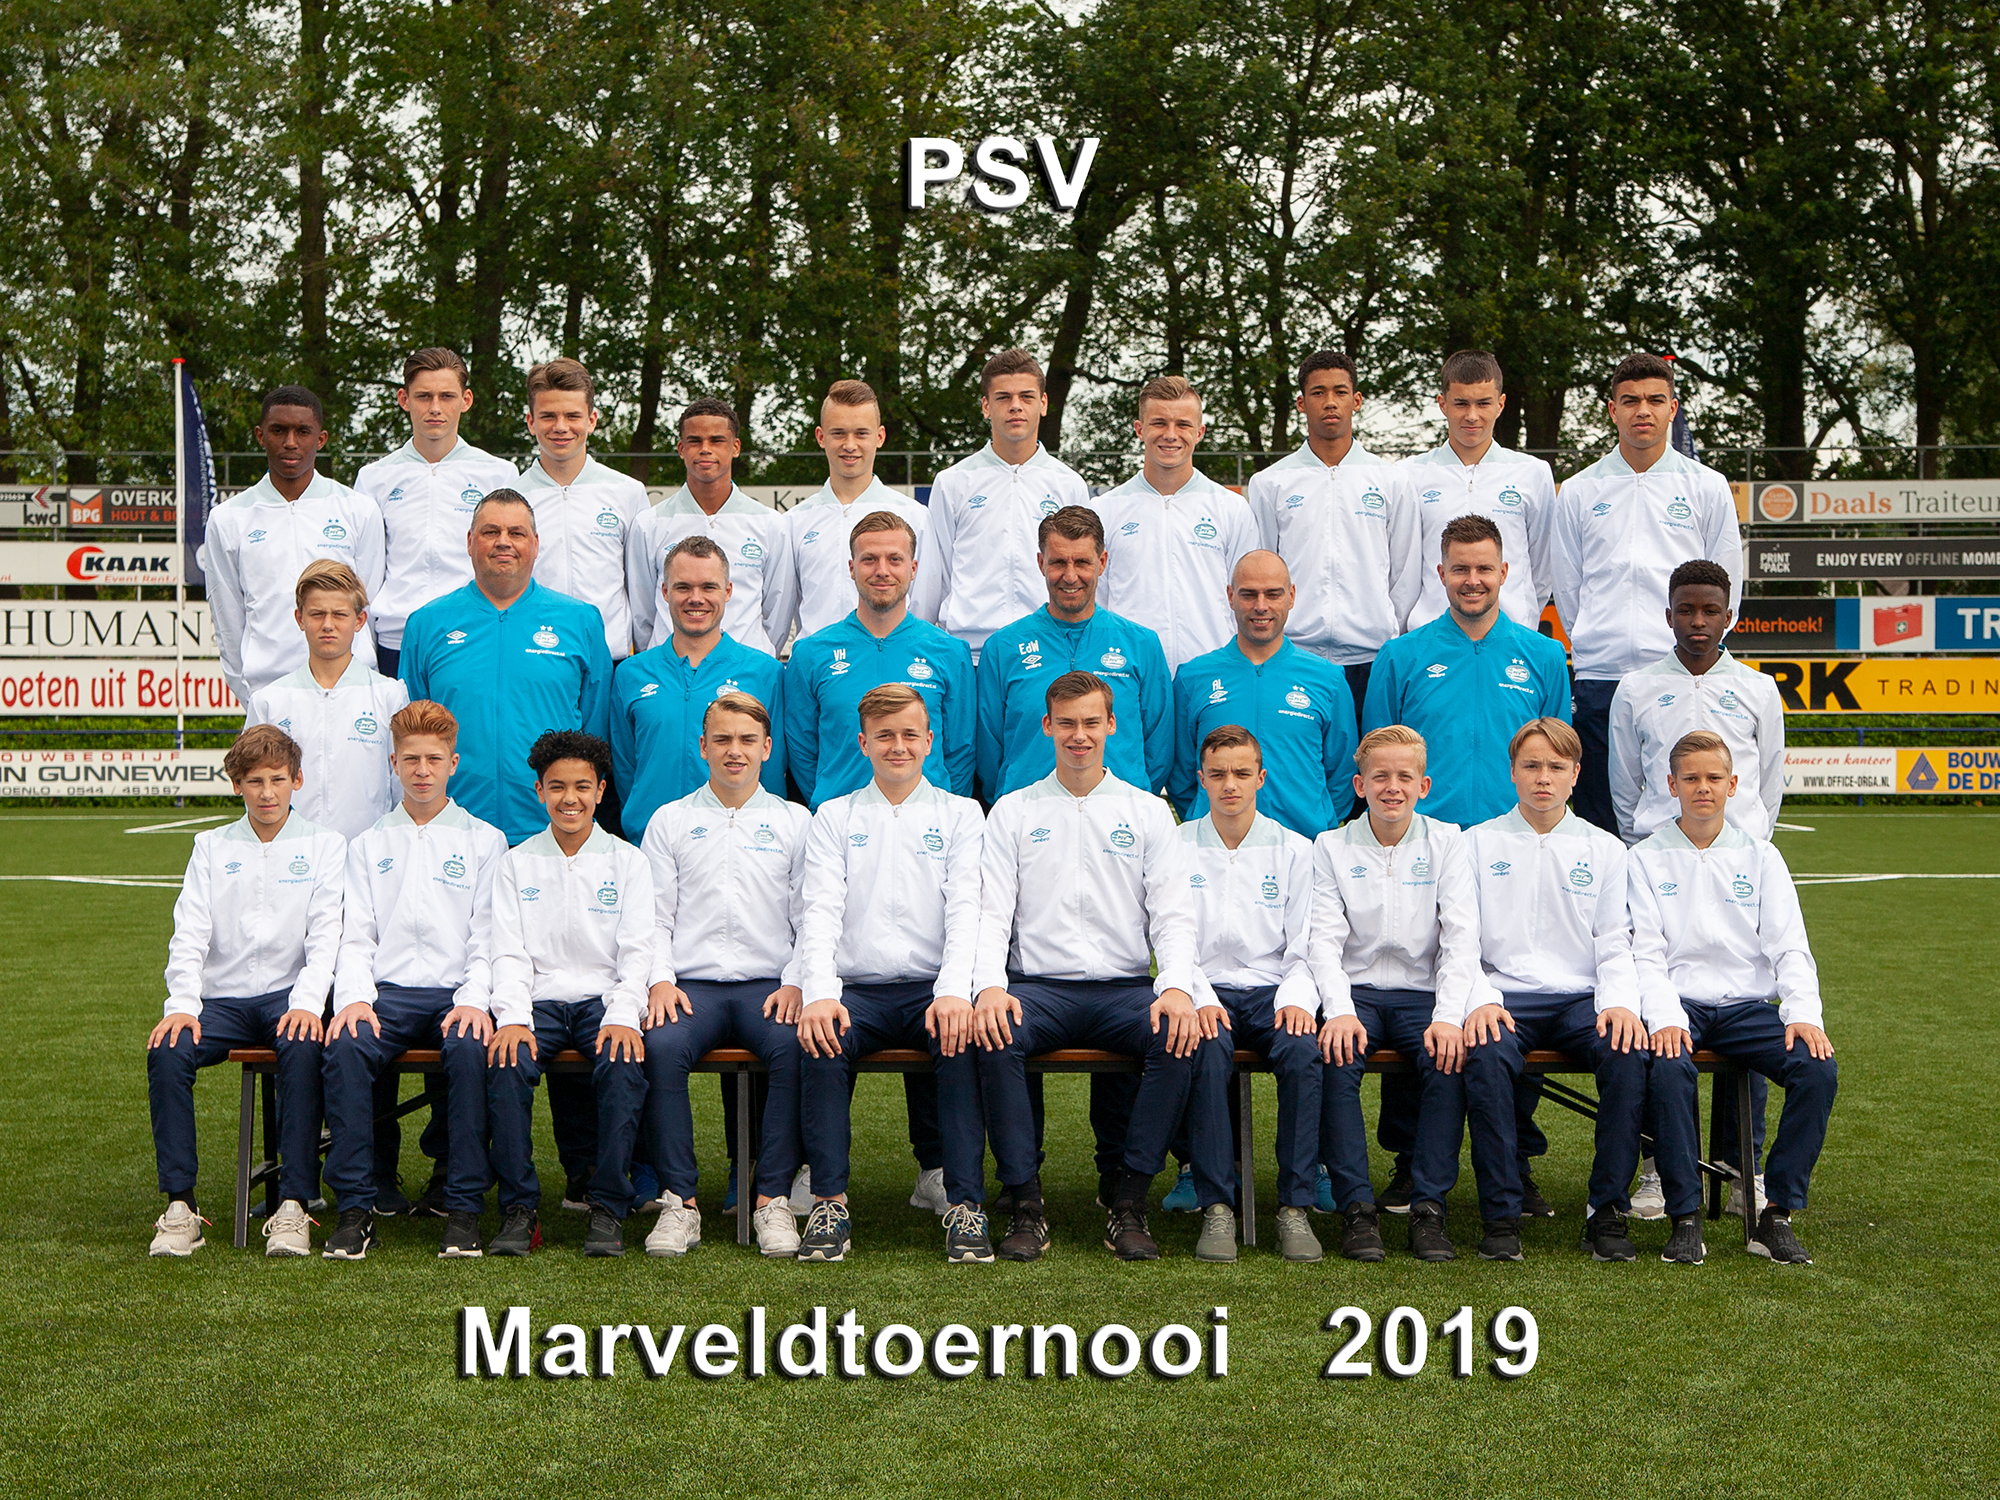 Marveld Tournament 2019 - Team PSV